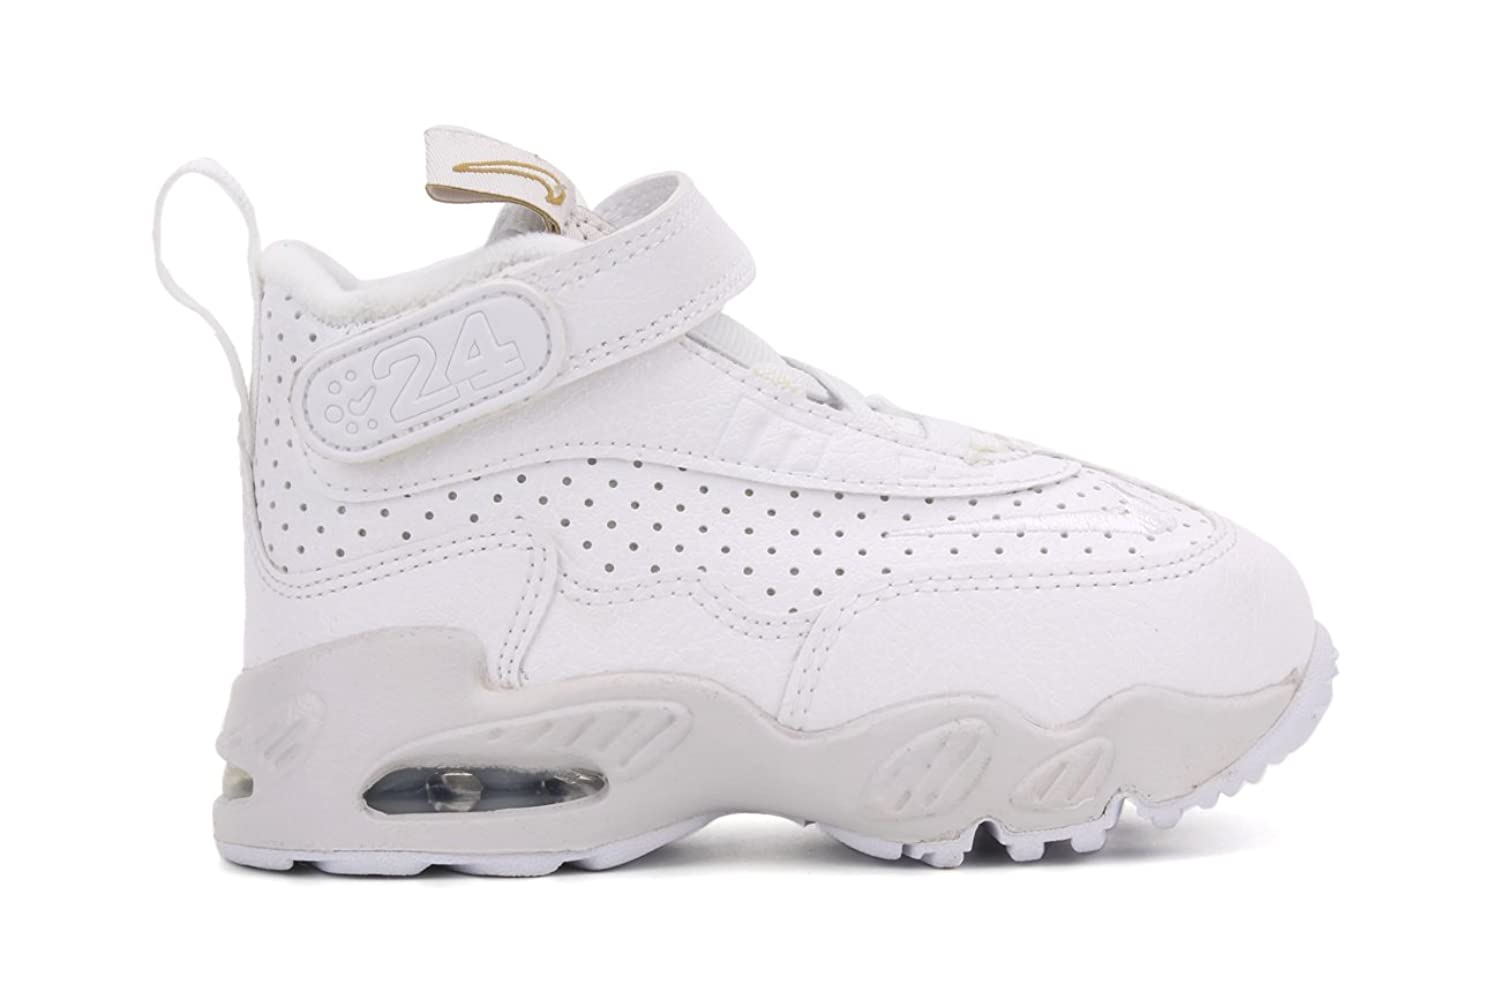 outlet store 6a790 bf5b2 high-quality Nike Toddler s Air Griffey Max 1 TD Infant Shoes.